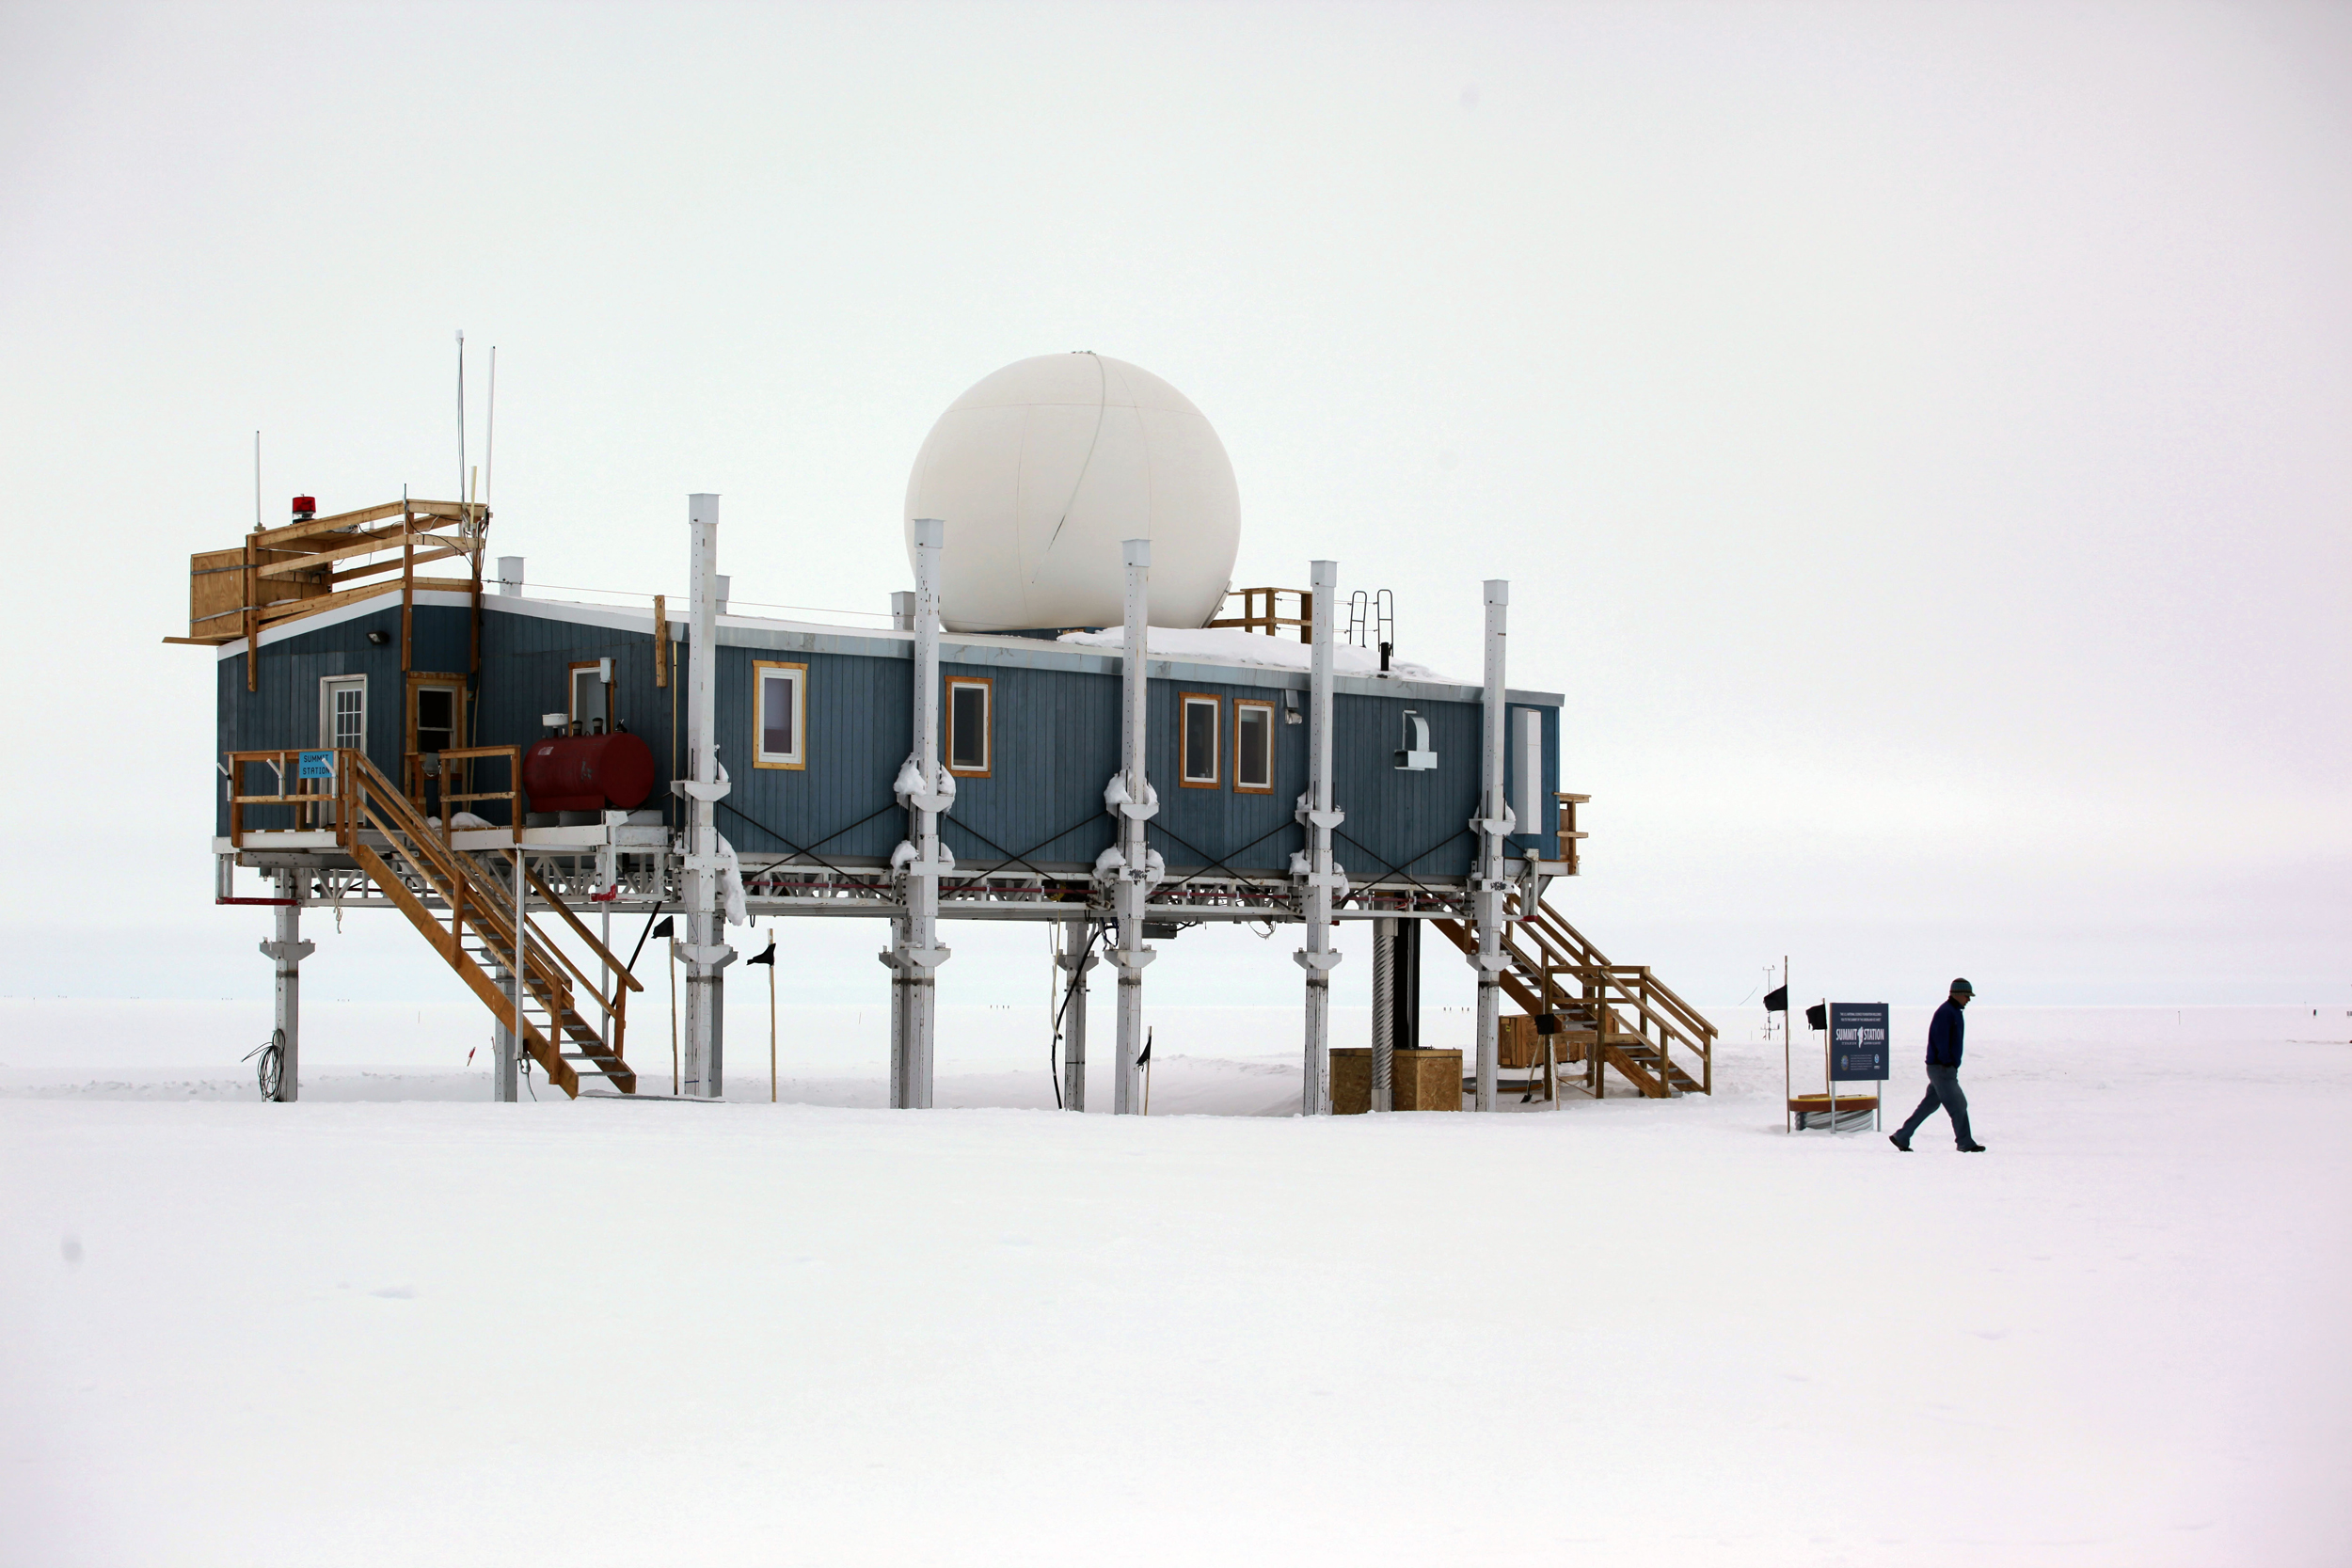 It rained for the first time at the summit of Greenland's ice sheet